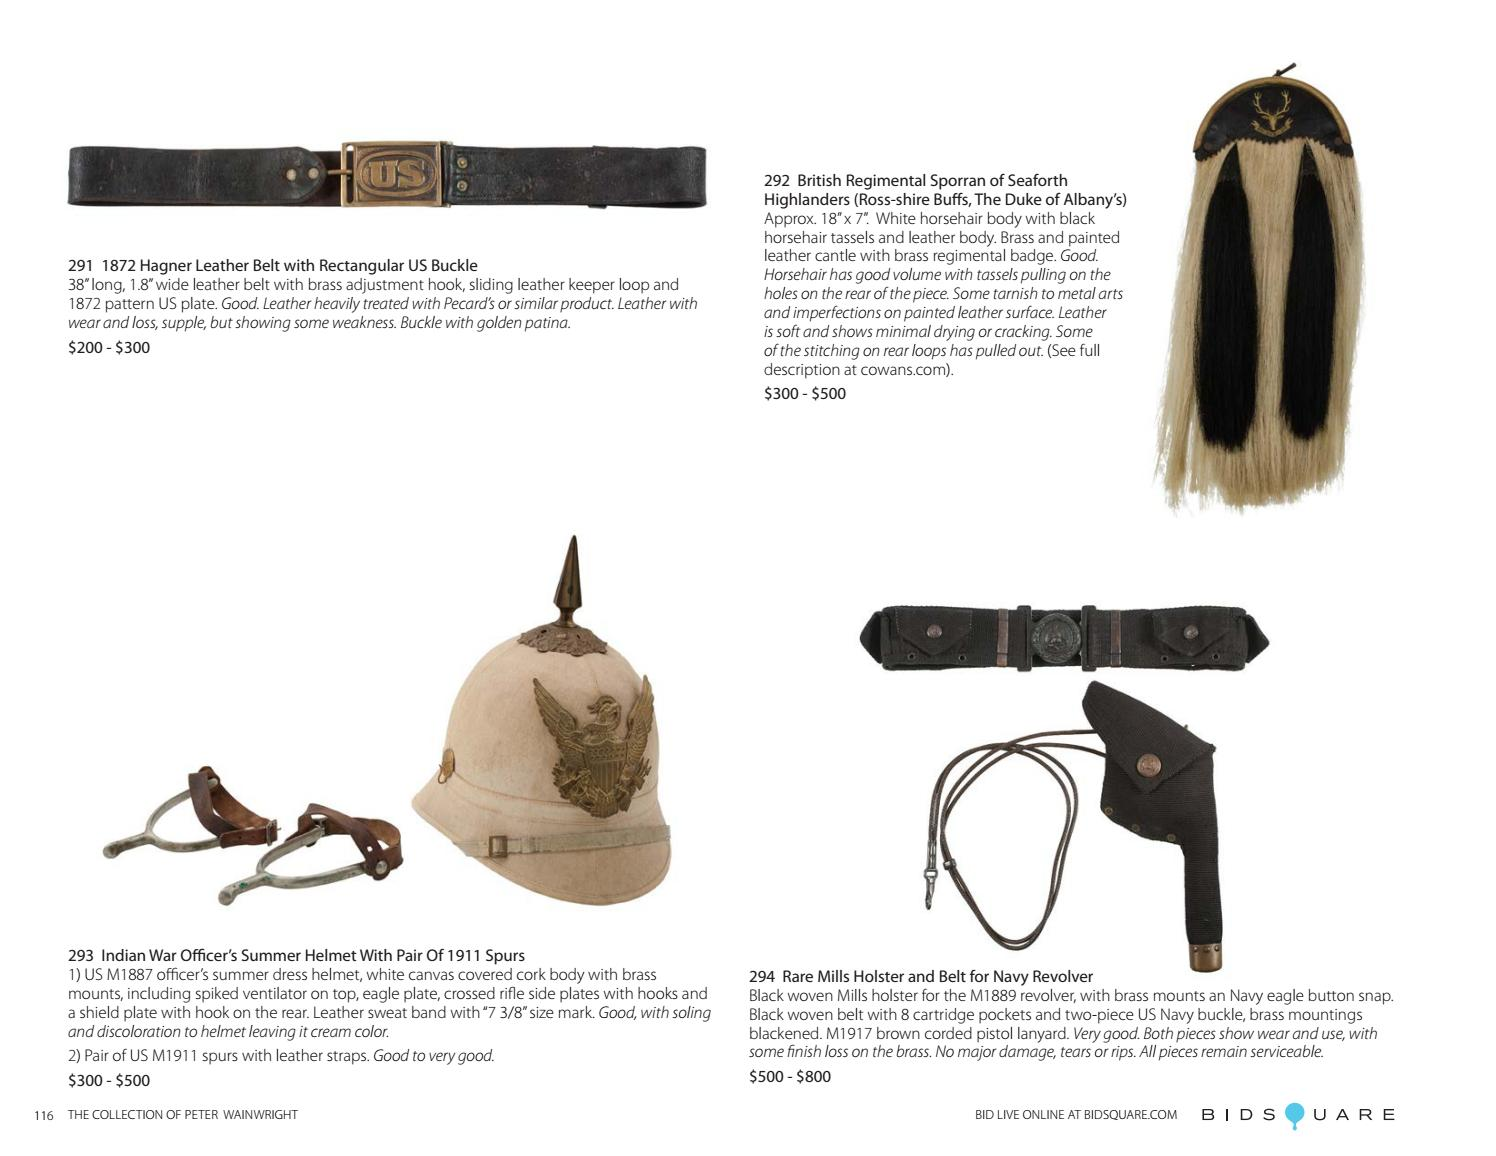 The Historic Firearms and Militaria Collection of Peter Wainwright